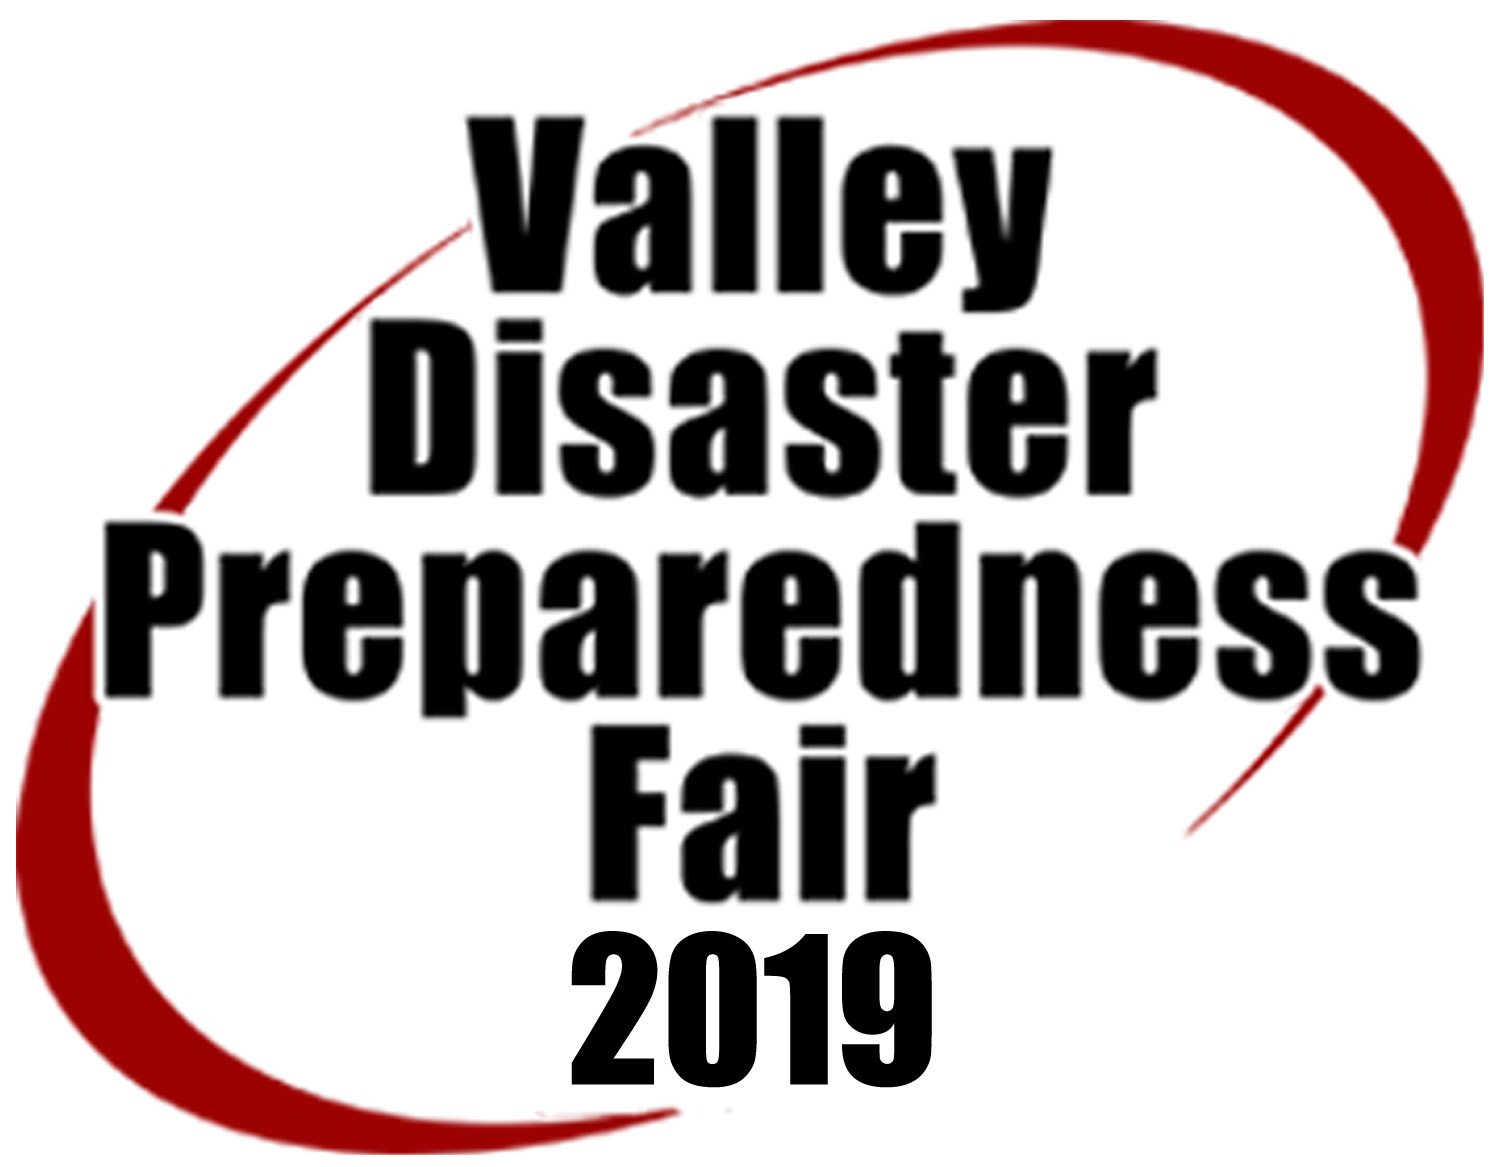 Valley Disaster Fair image